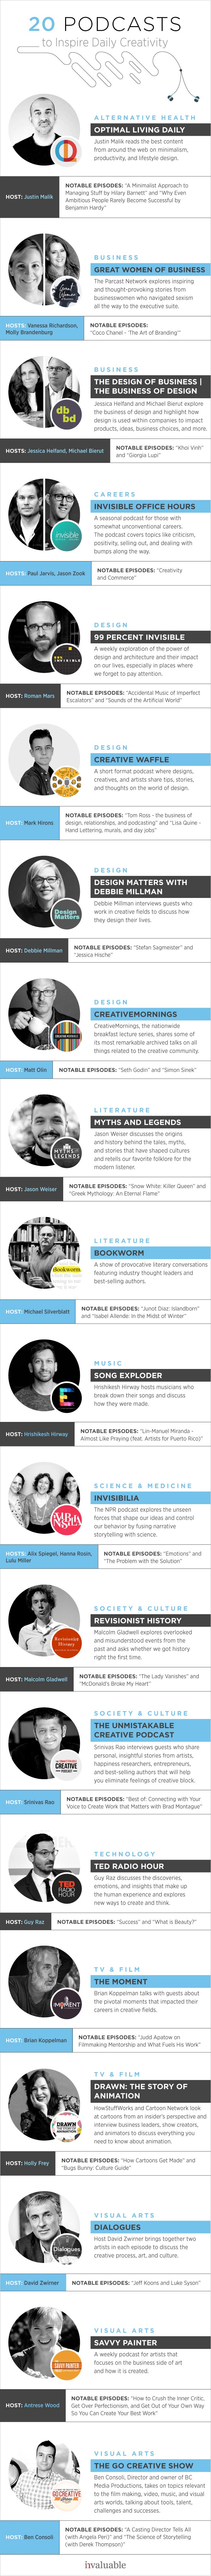 Inspiration on the Go: 20 Must-Listen Podcasts - Infographic